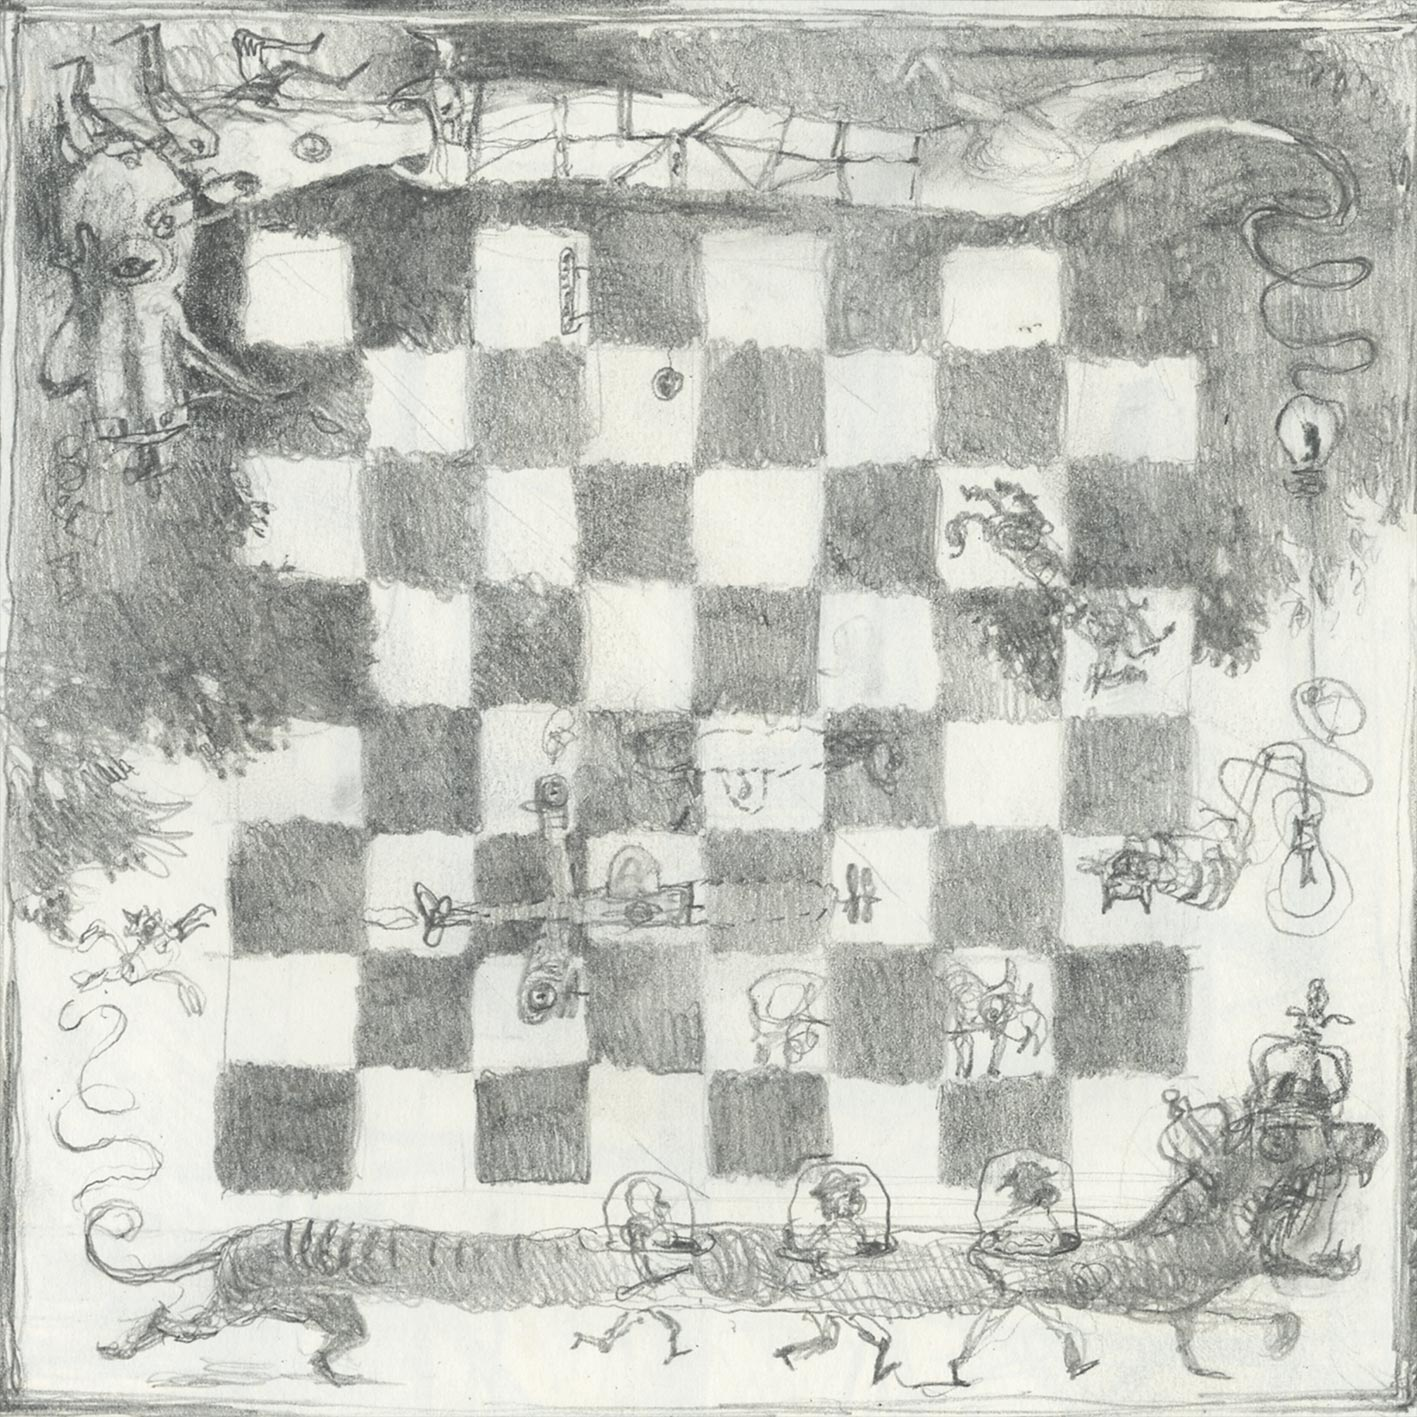 chess-sketch-board.jpg